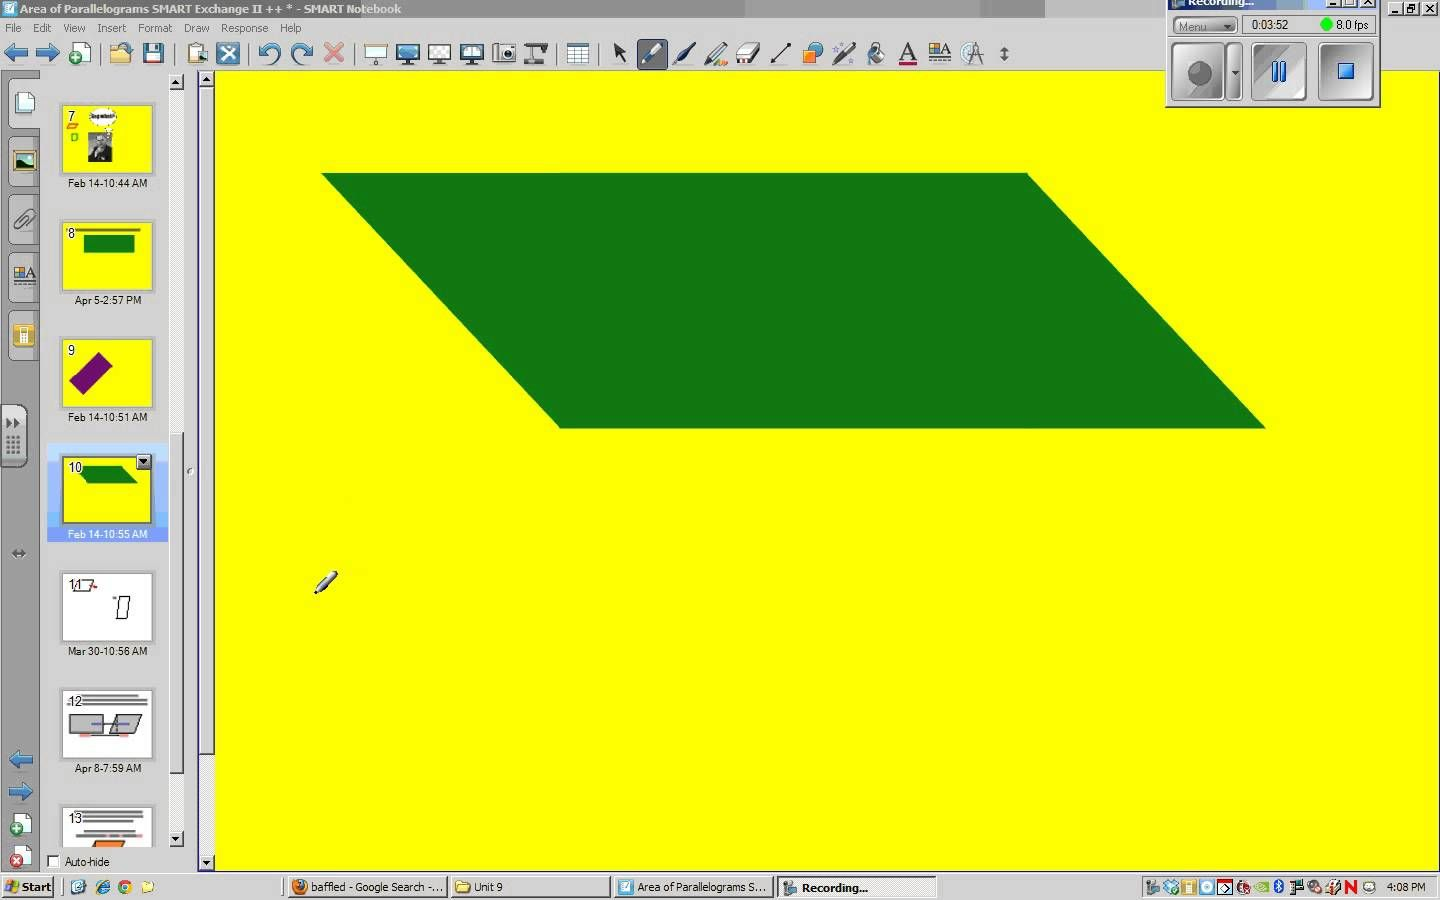 Lesson 9 How To Find The Area Of A Parallelogram